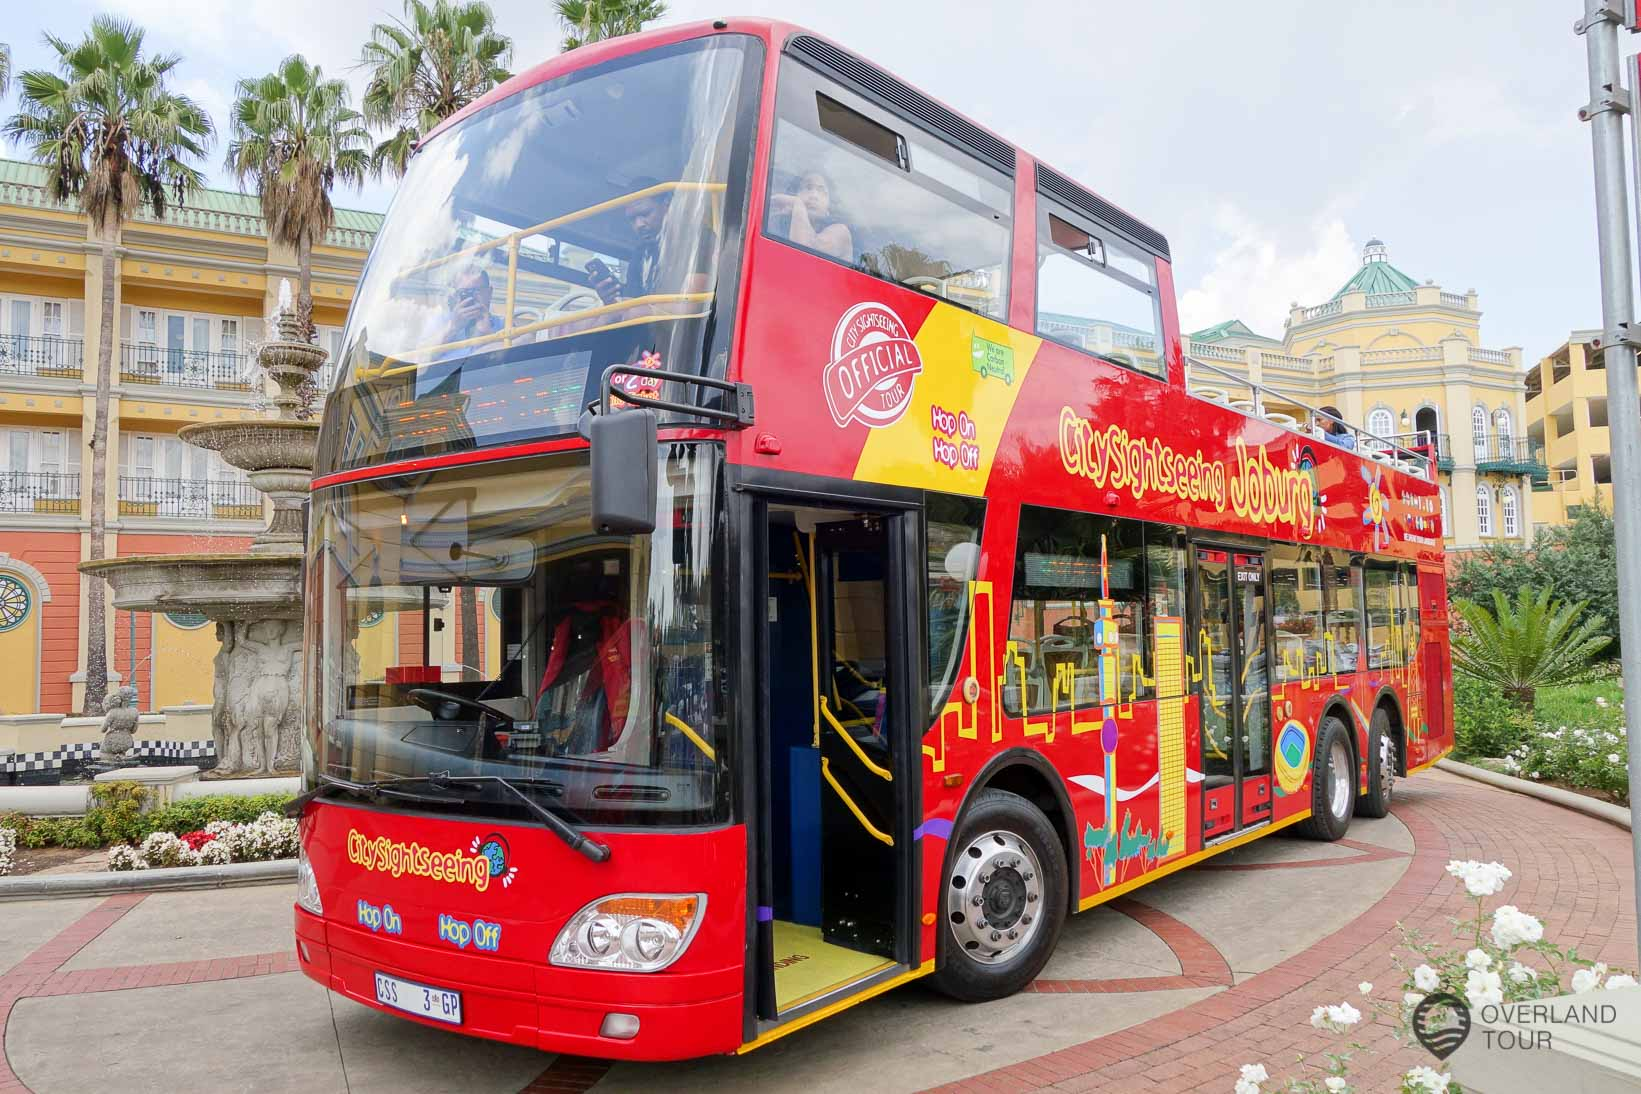 Der rote City Sightseeing Doppeldeckerbus